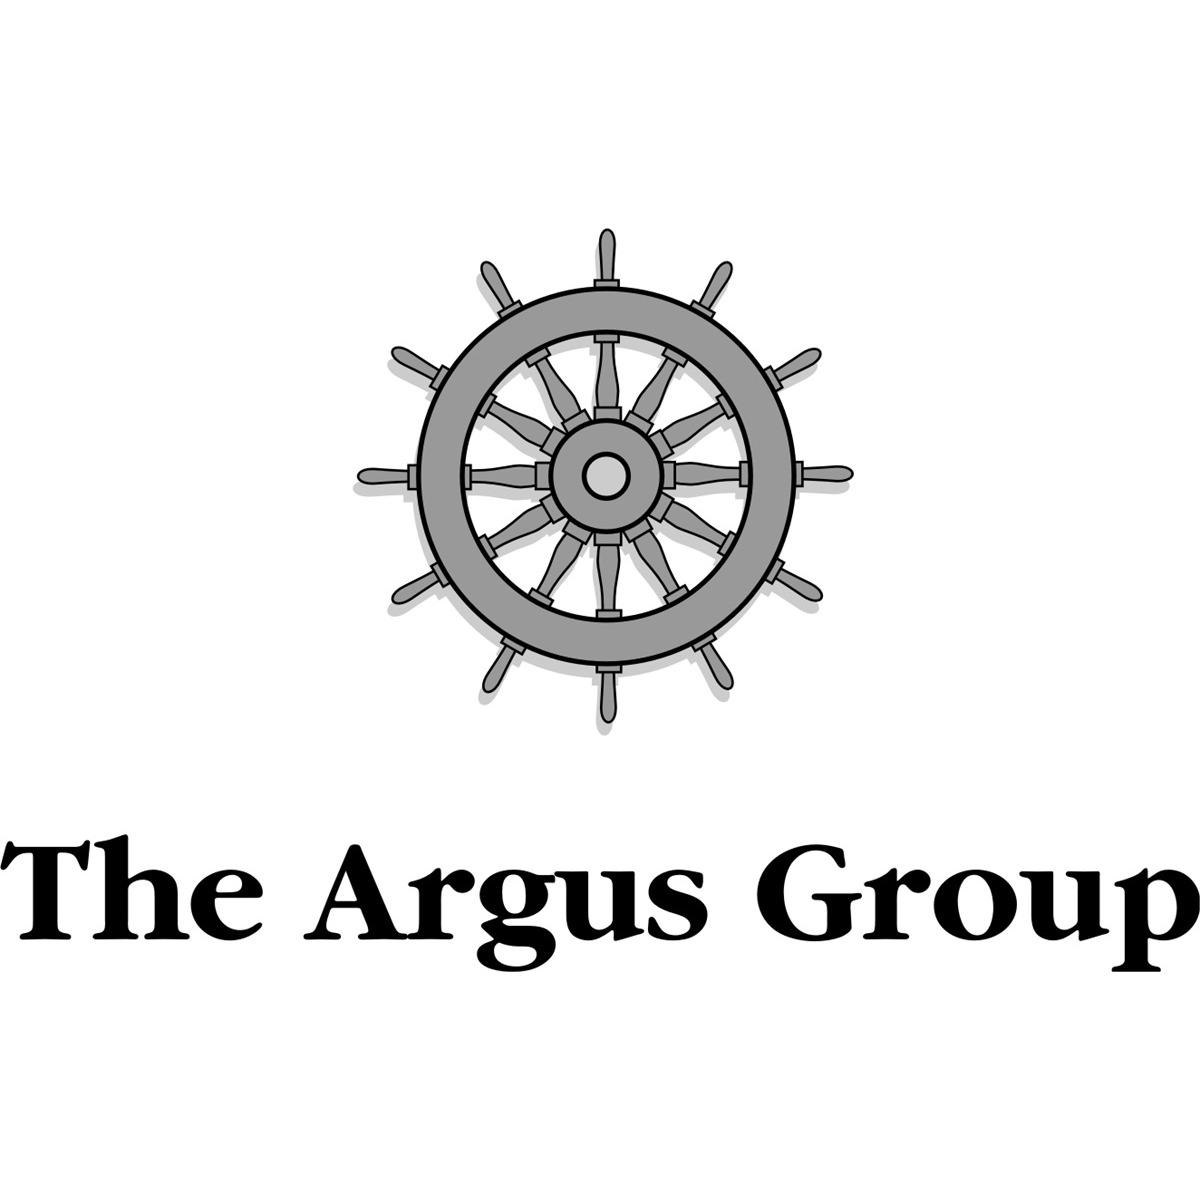 The Argus Group image 3